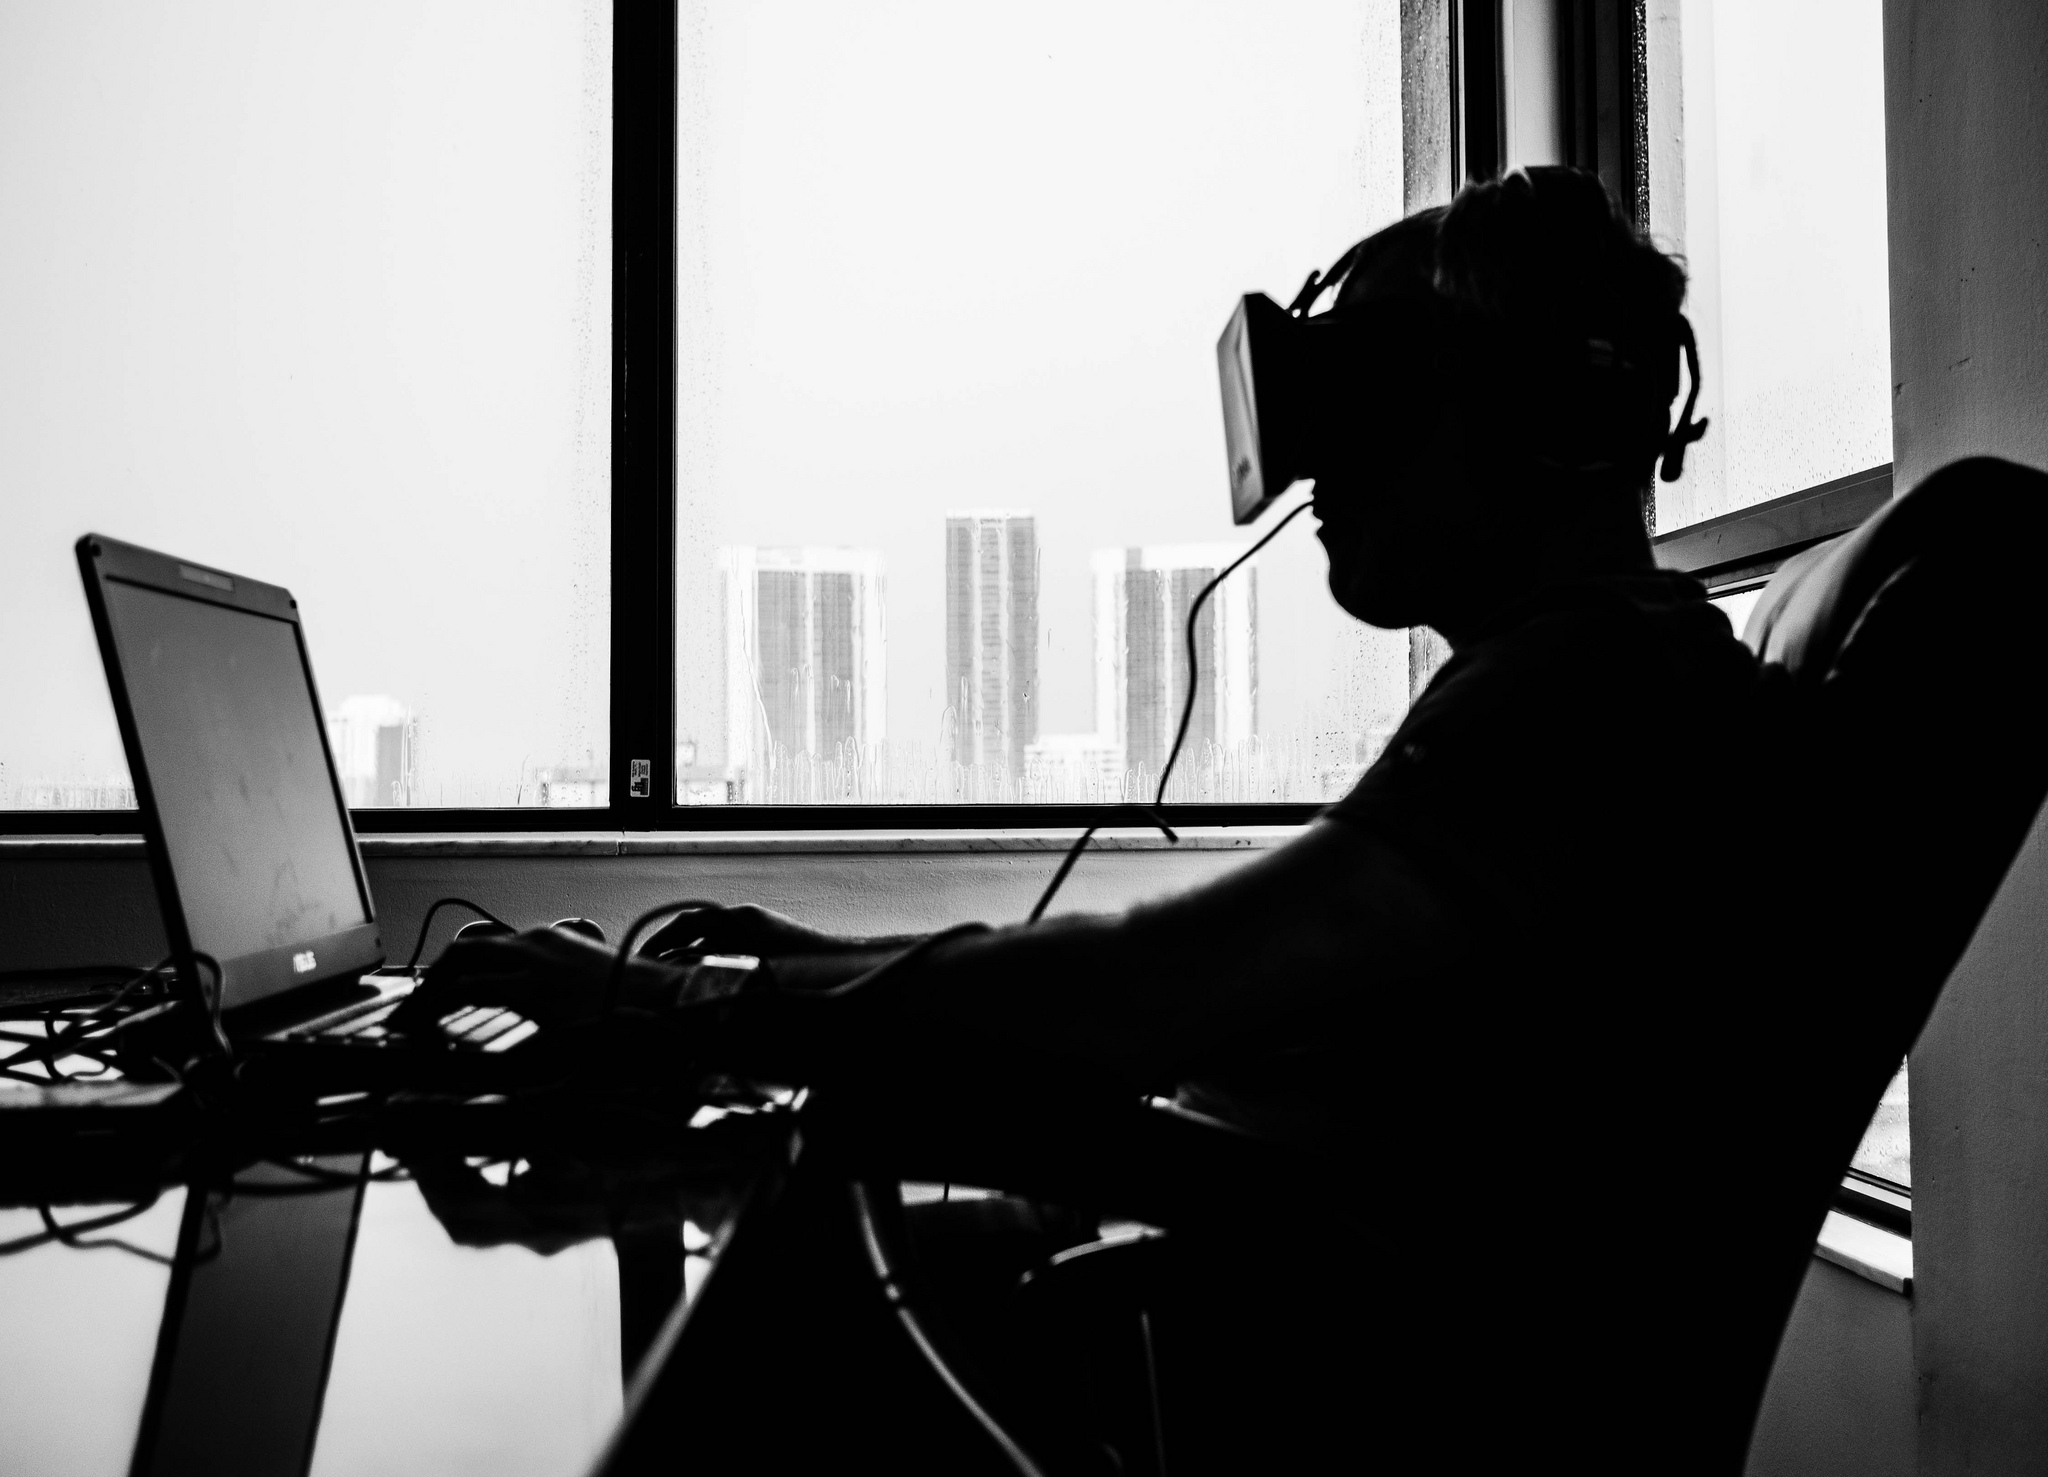 There's been very little research on long-term extended VR use.